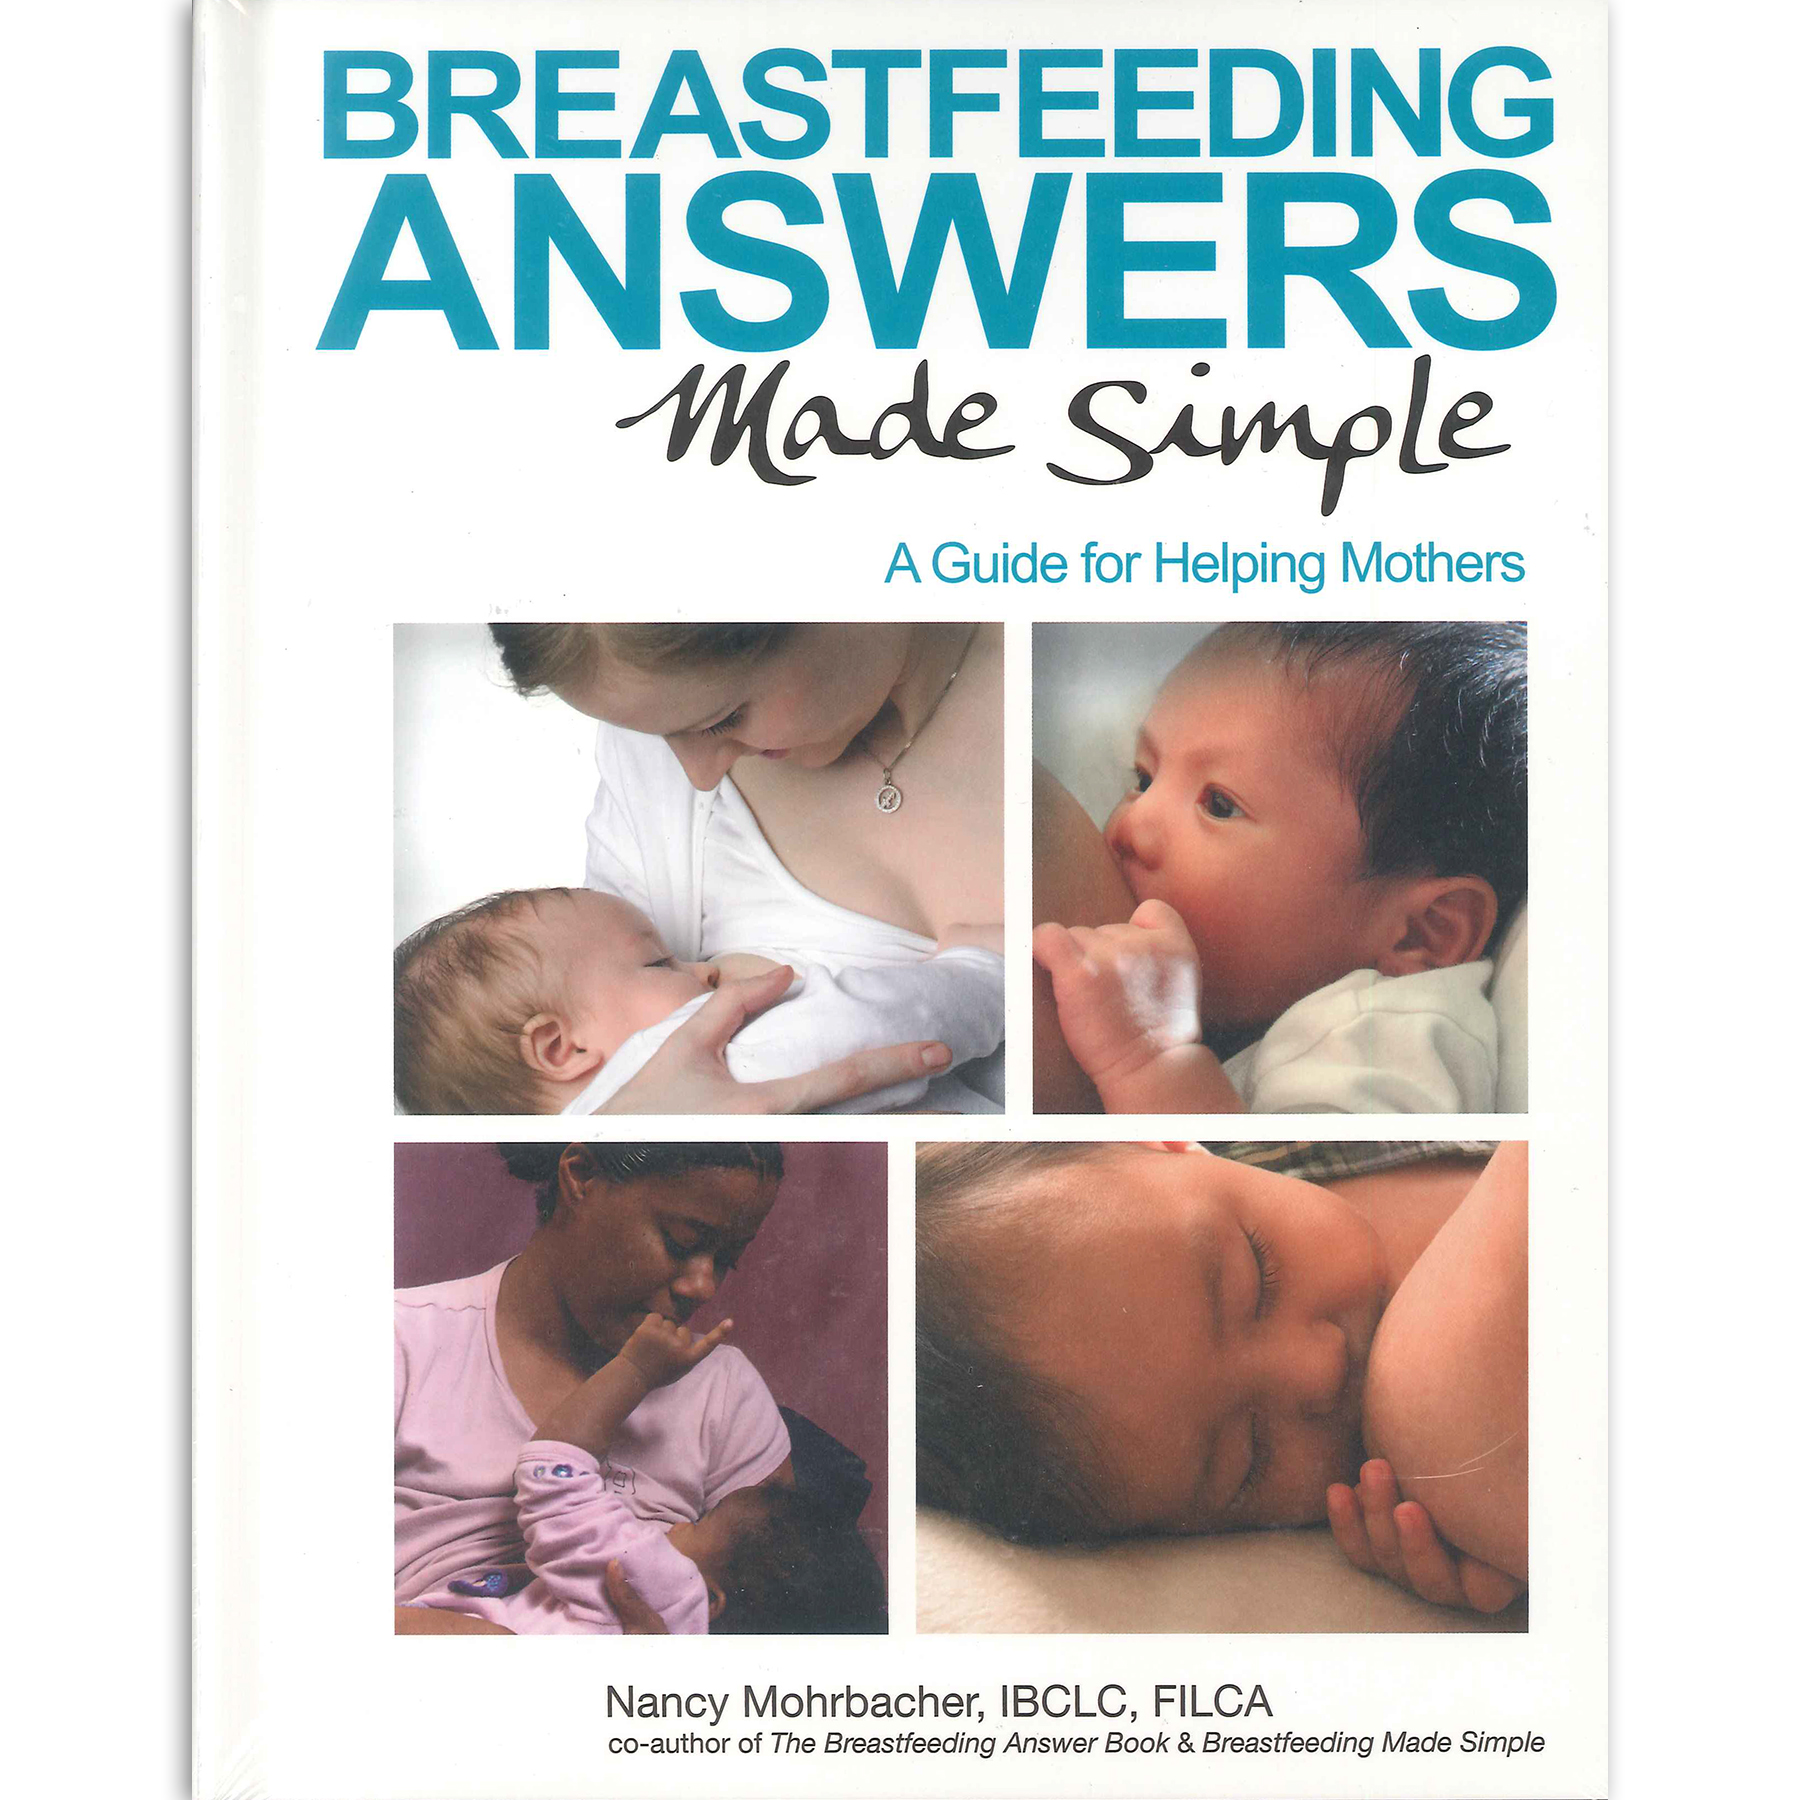 Breastfeeding Answers Made Simple Book, guide for helping mothers, 4 photos of moms breastfeeding, Childbirth Graphics, 50258